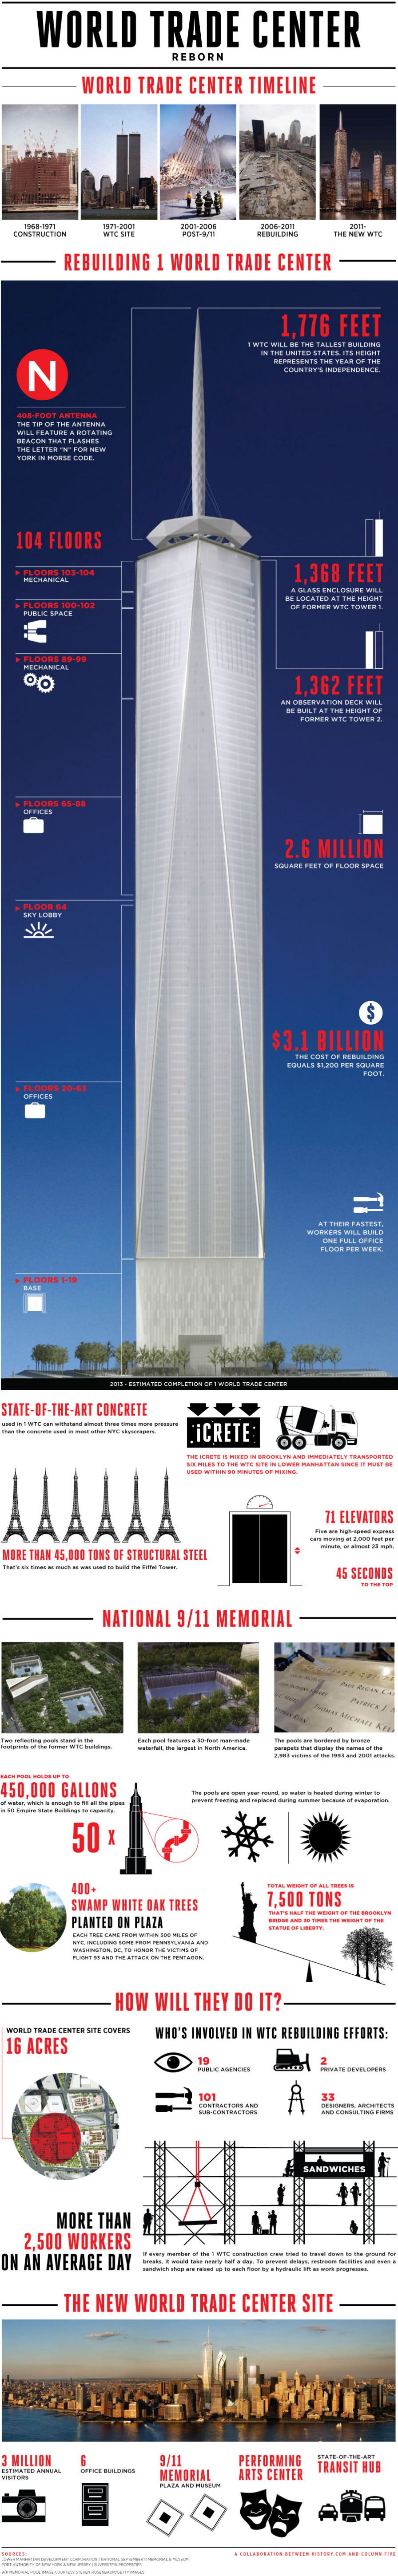 911 World Trade Center Reborn Infographic